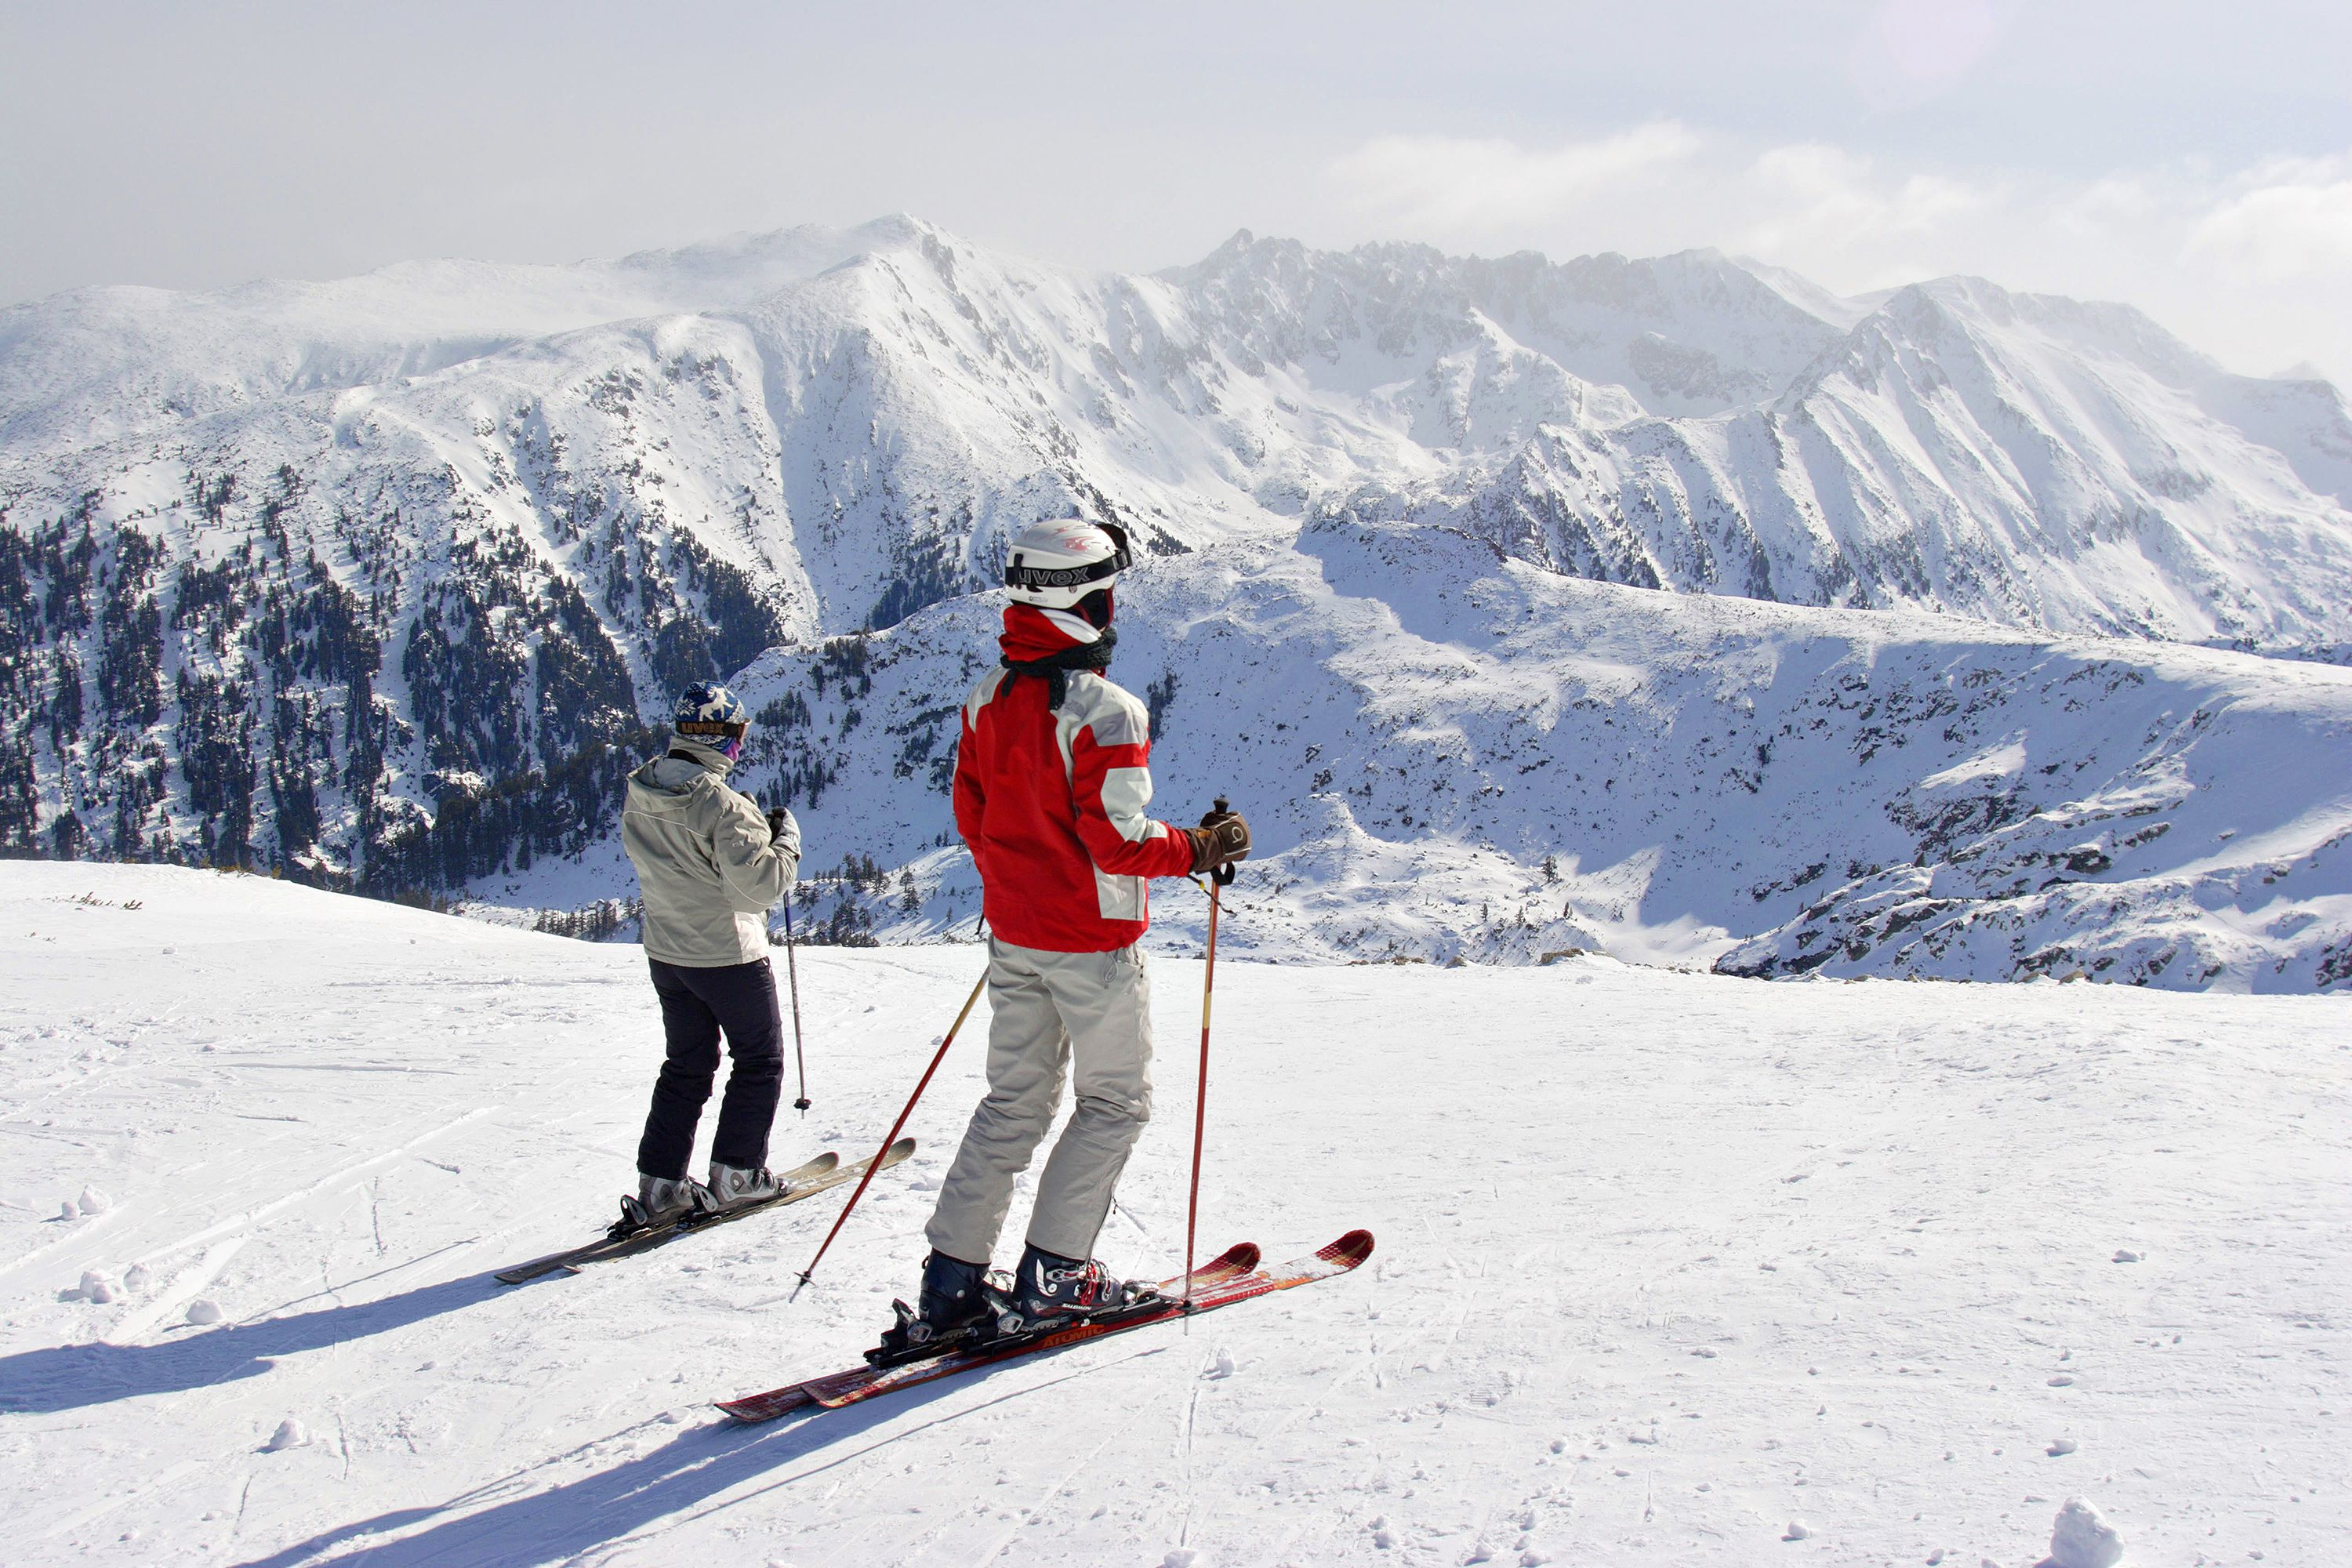 This Bulgarian town is the perfect location for cheap winter fun on the slopes.